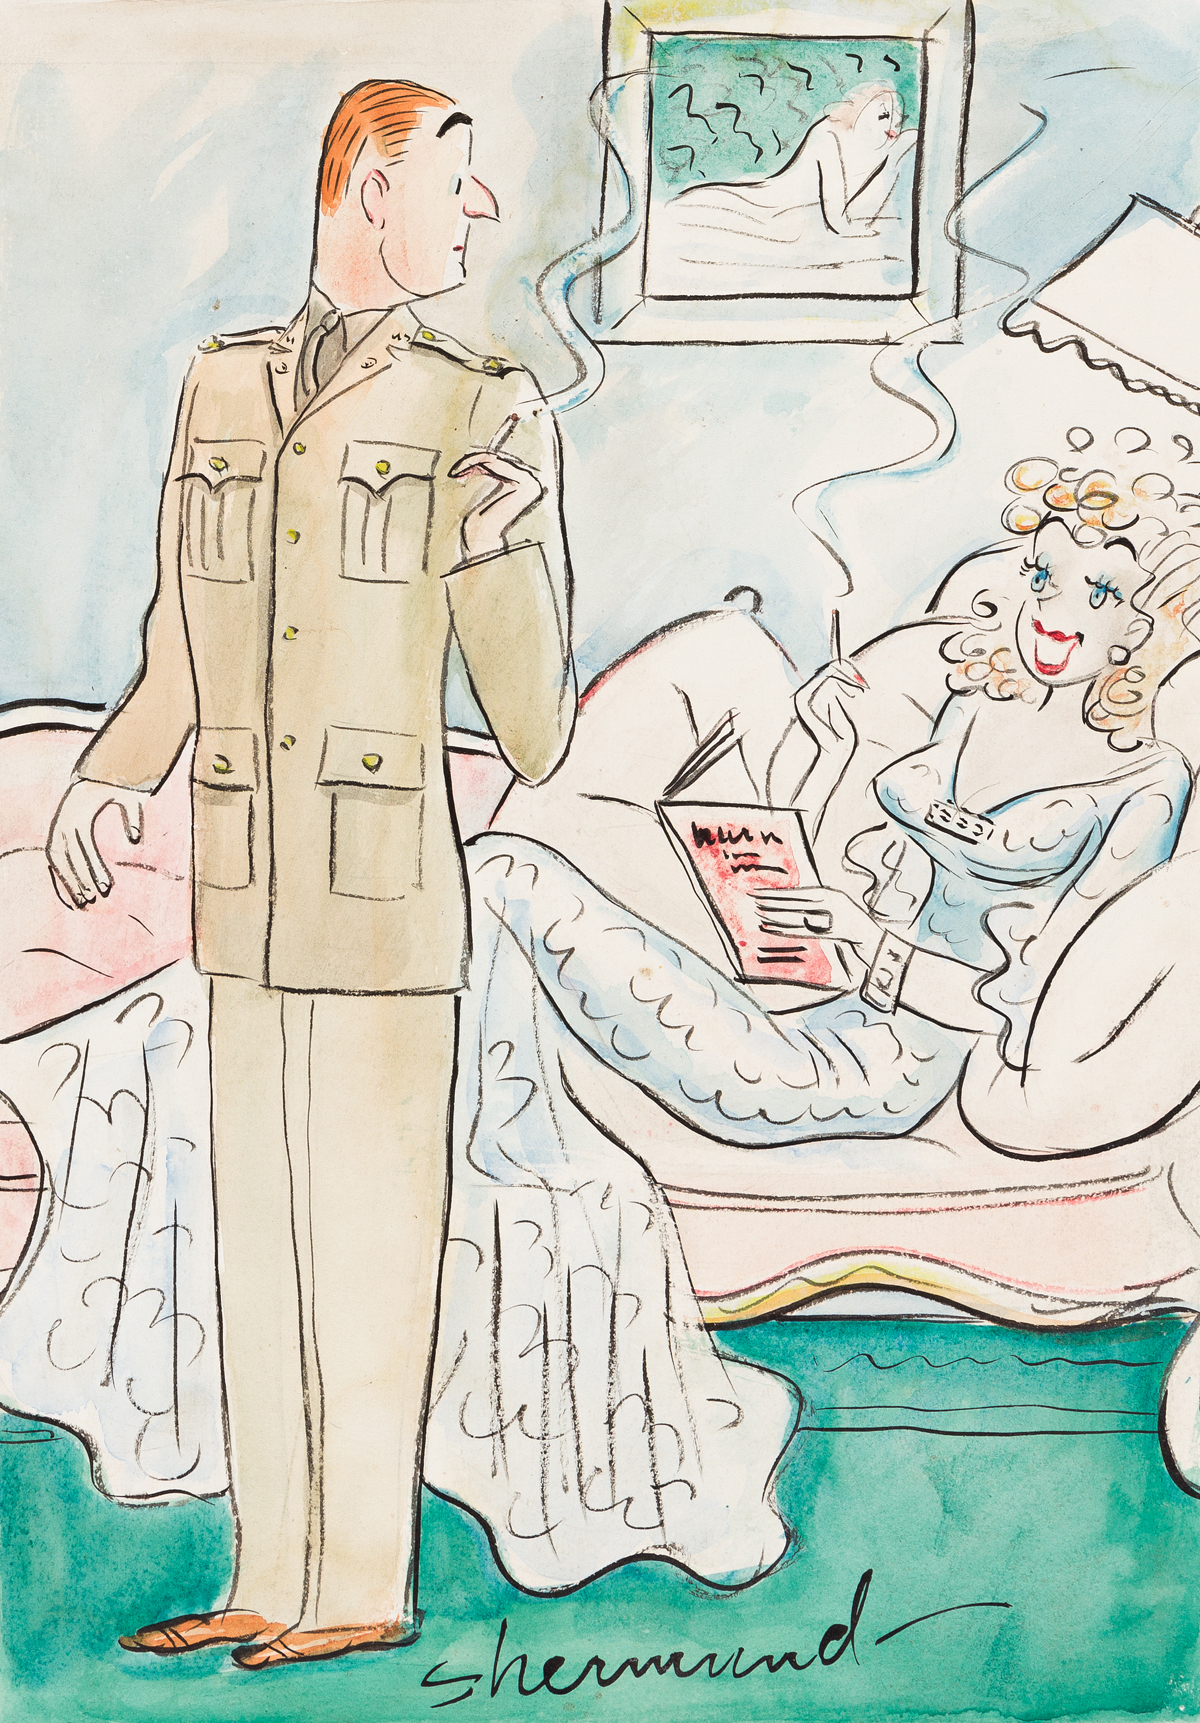 BARBARA SHERMUND (1899-1978) Will they give you a new suit when you get out, dear, like they do in Sing Sing? [CARTOONS]